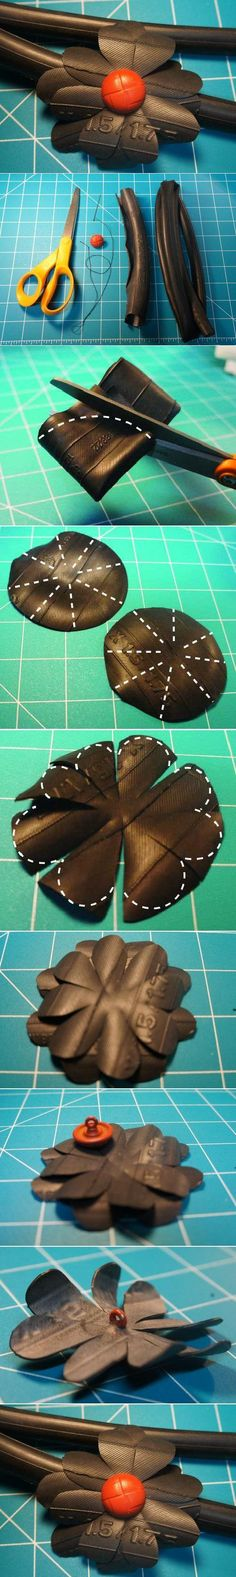 DIY Rubber Tire Flower DIY Projects